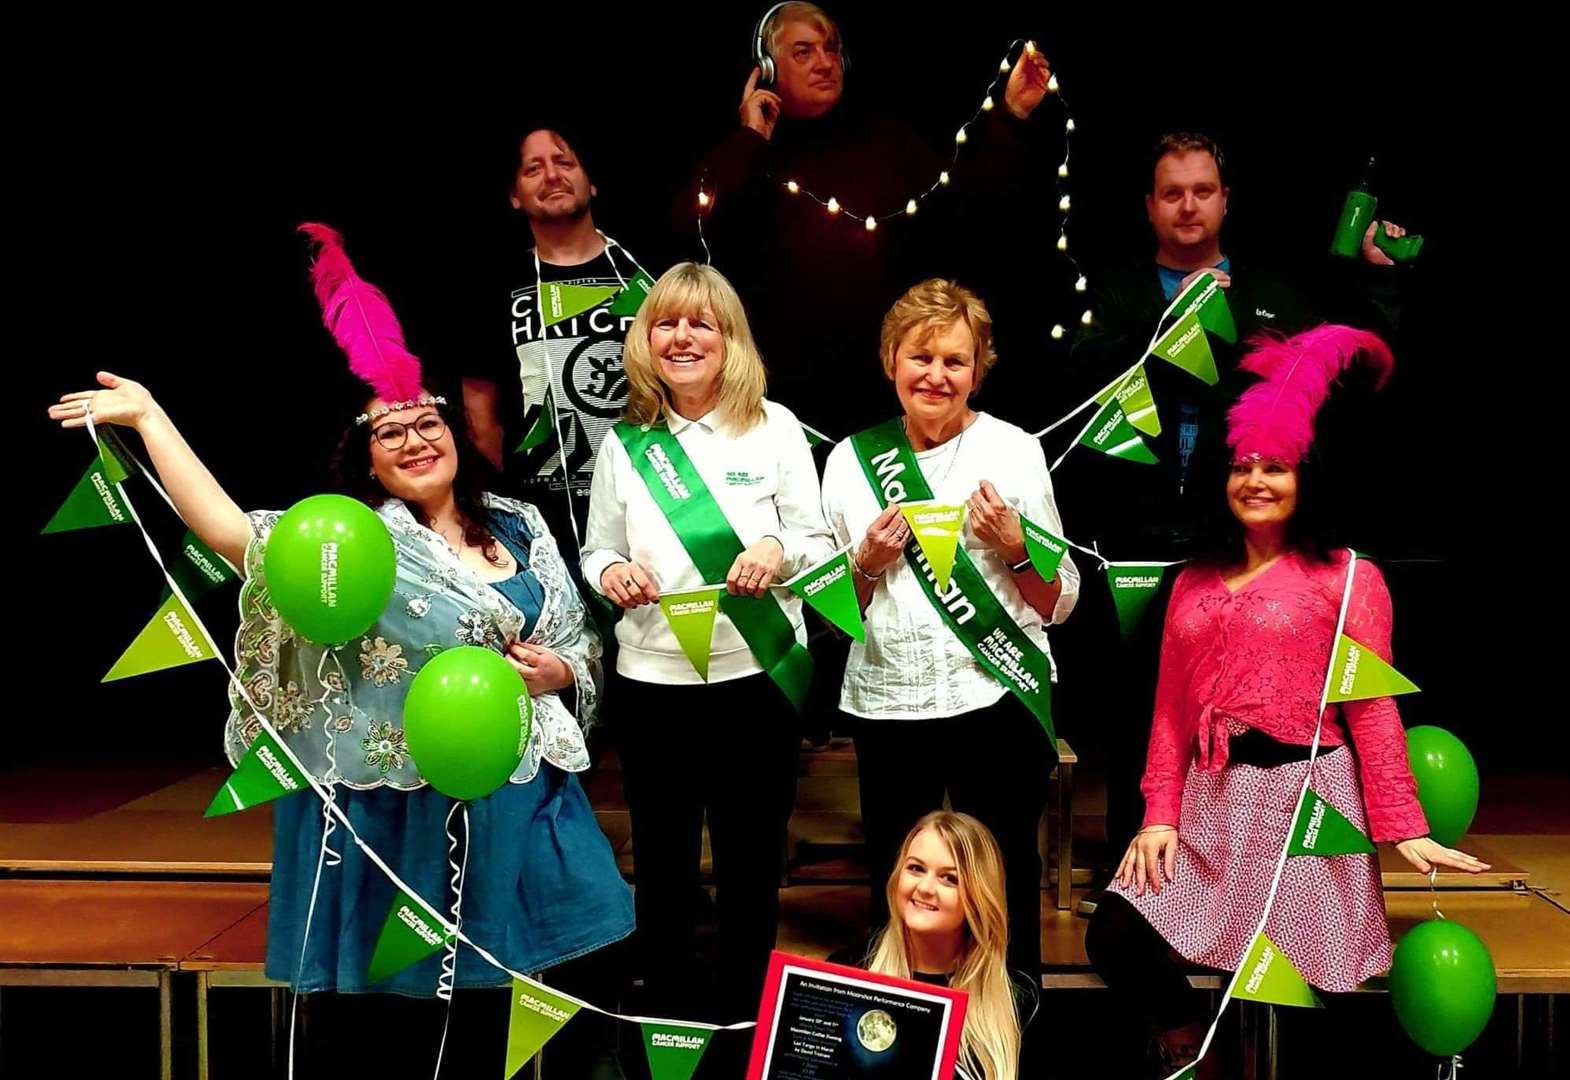 Show held at March Town Hall brings in cash for Macmillan Cancer Support